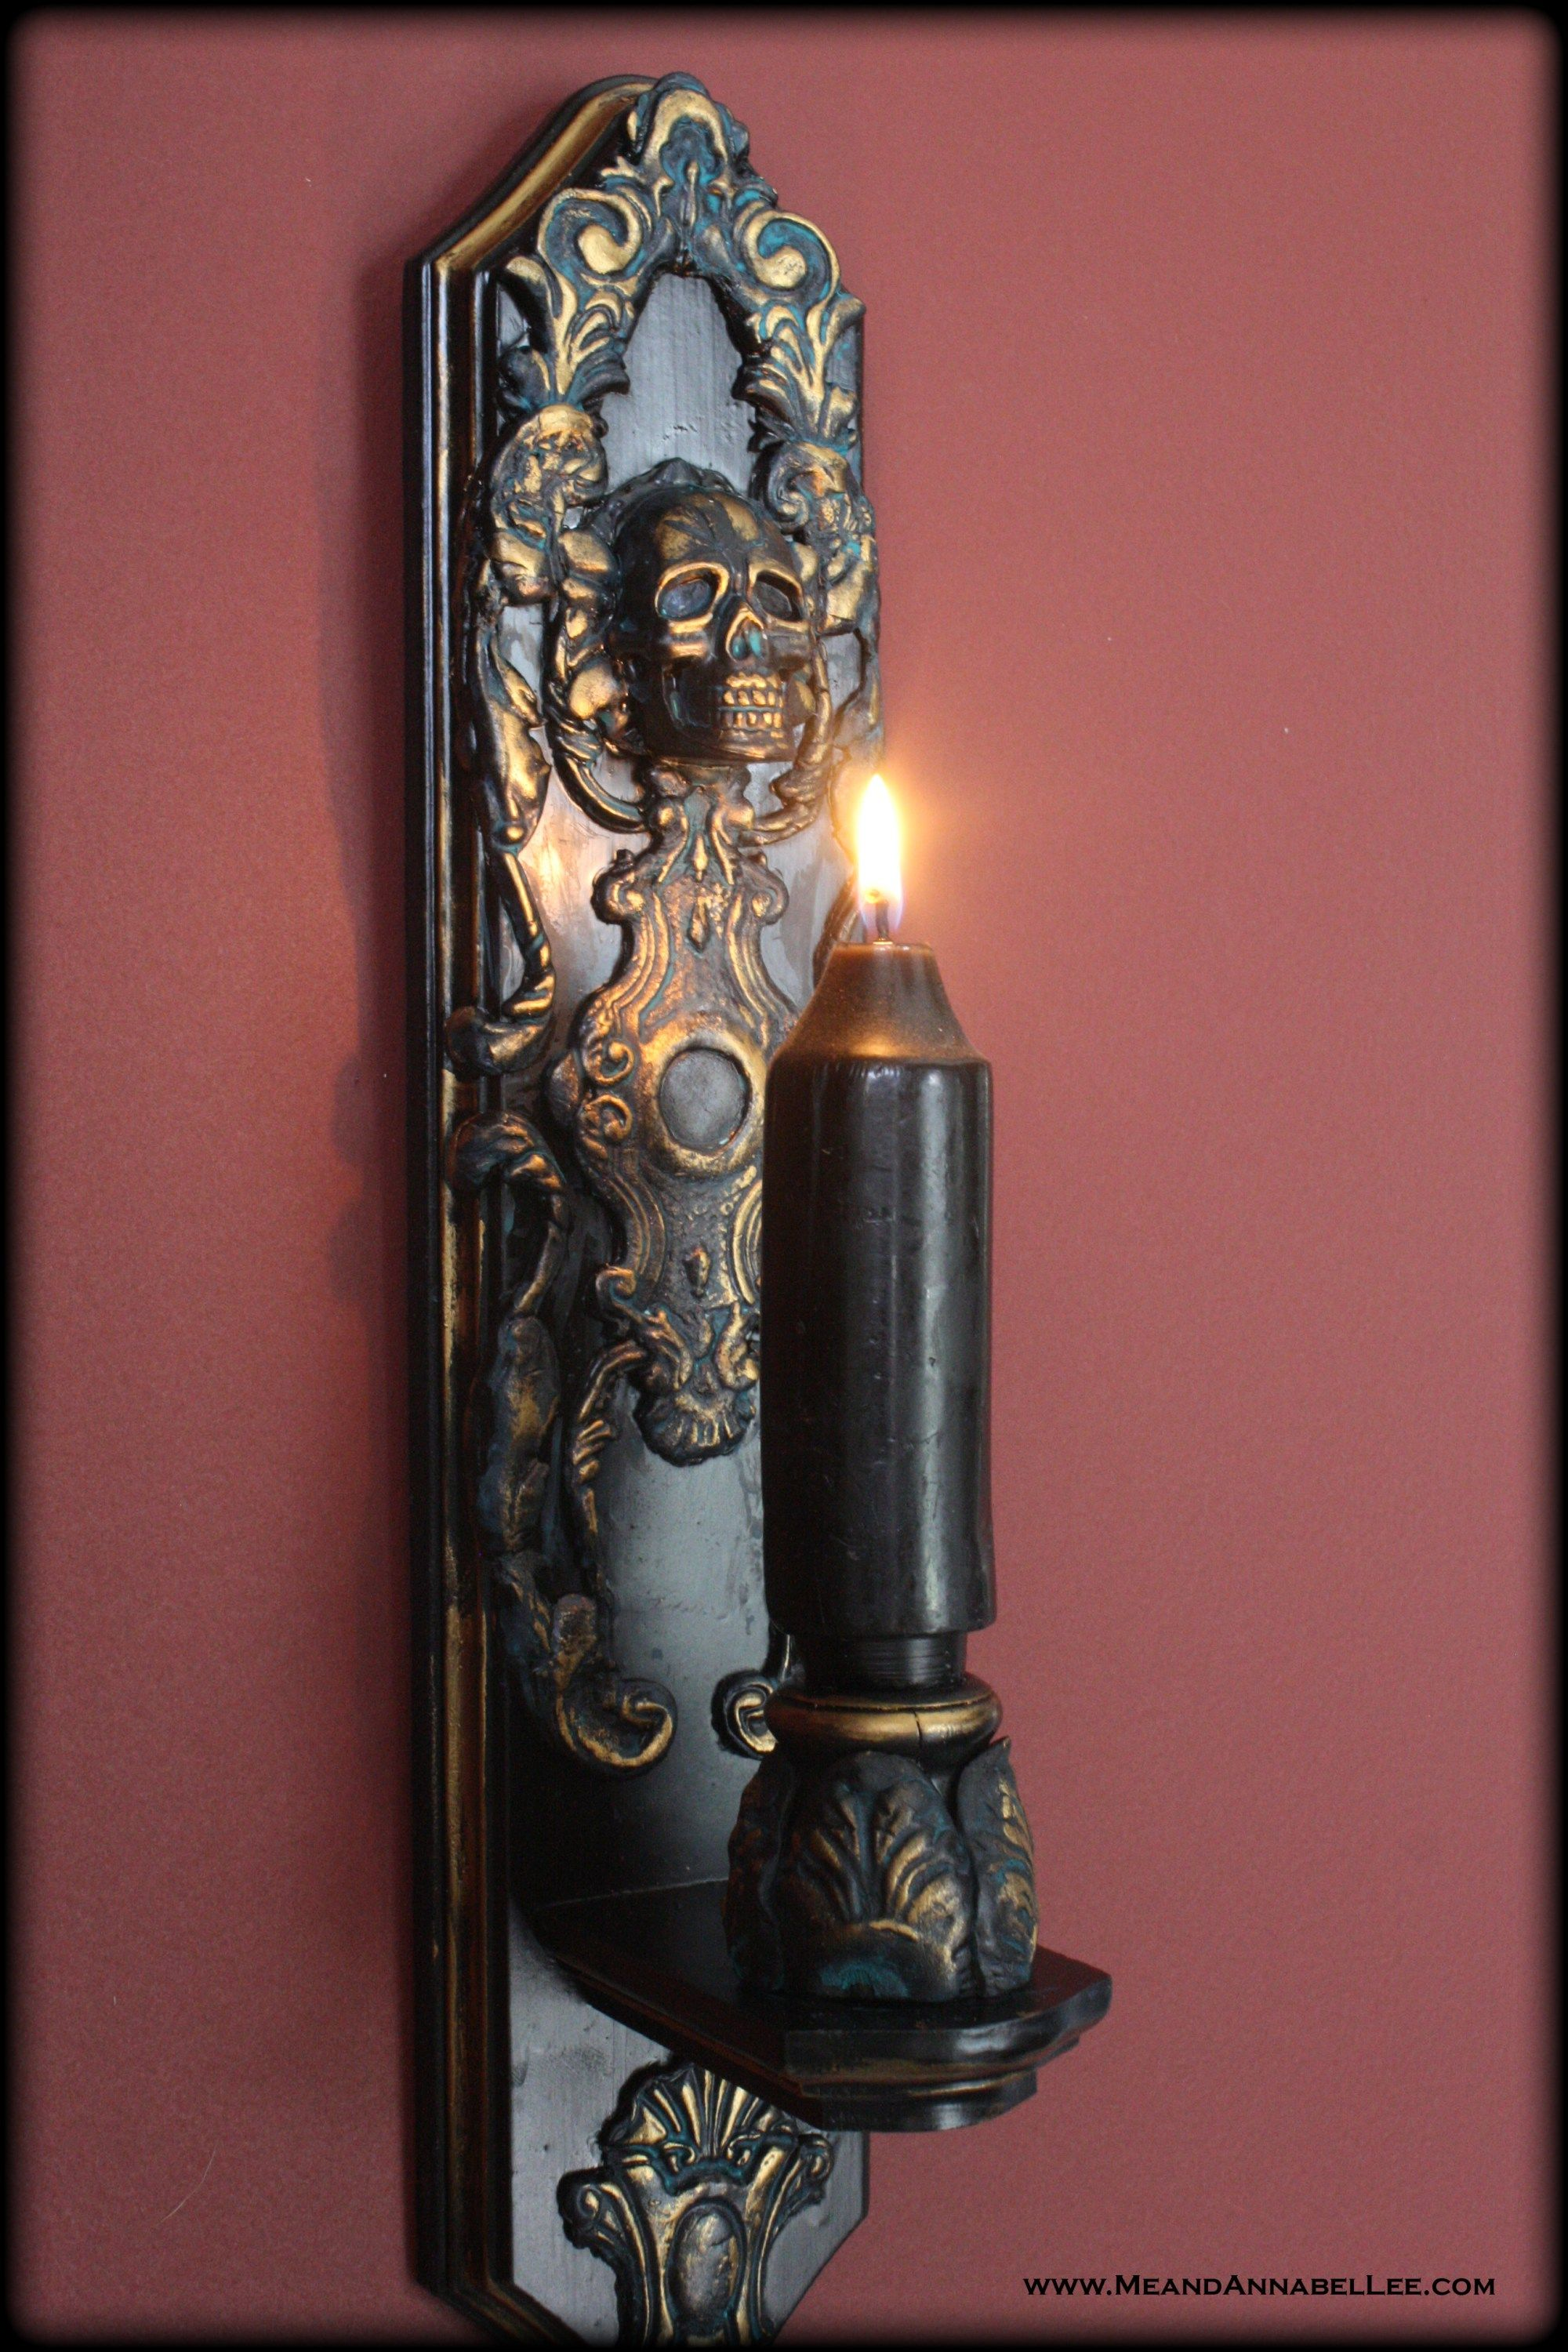 Diy Gothic Home Decor - Skull Candle Sconce - Paper